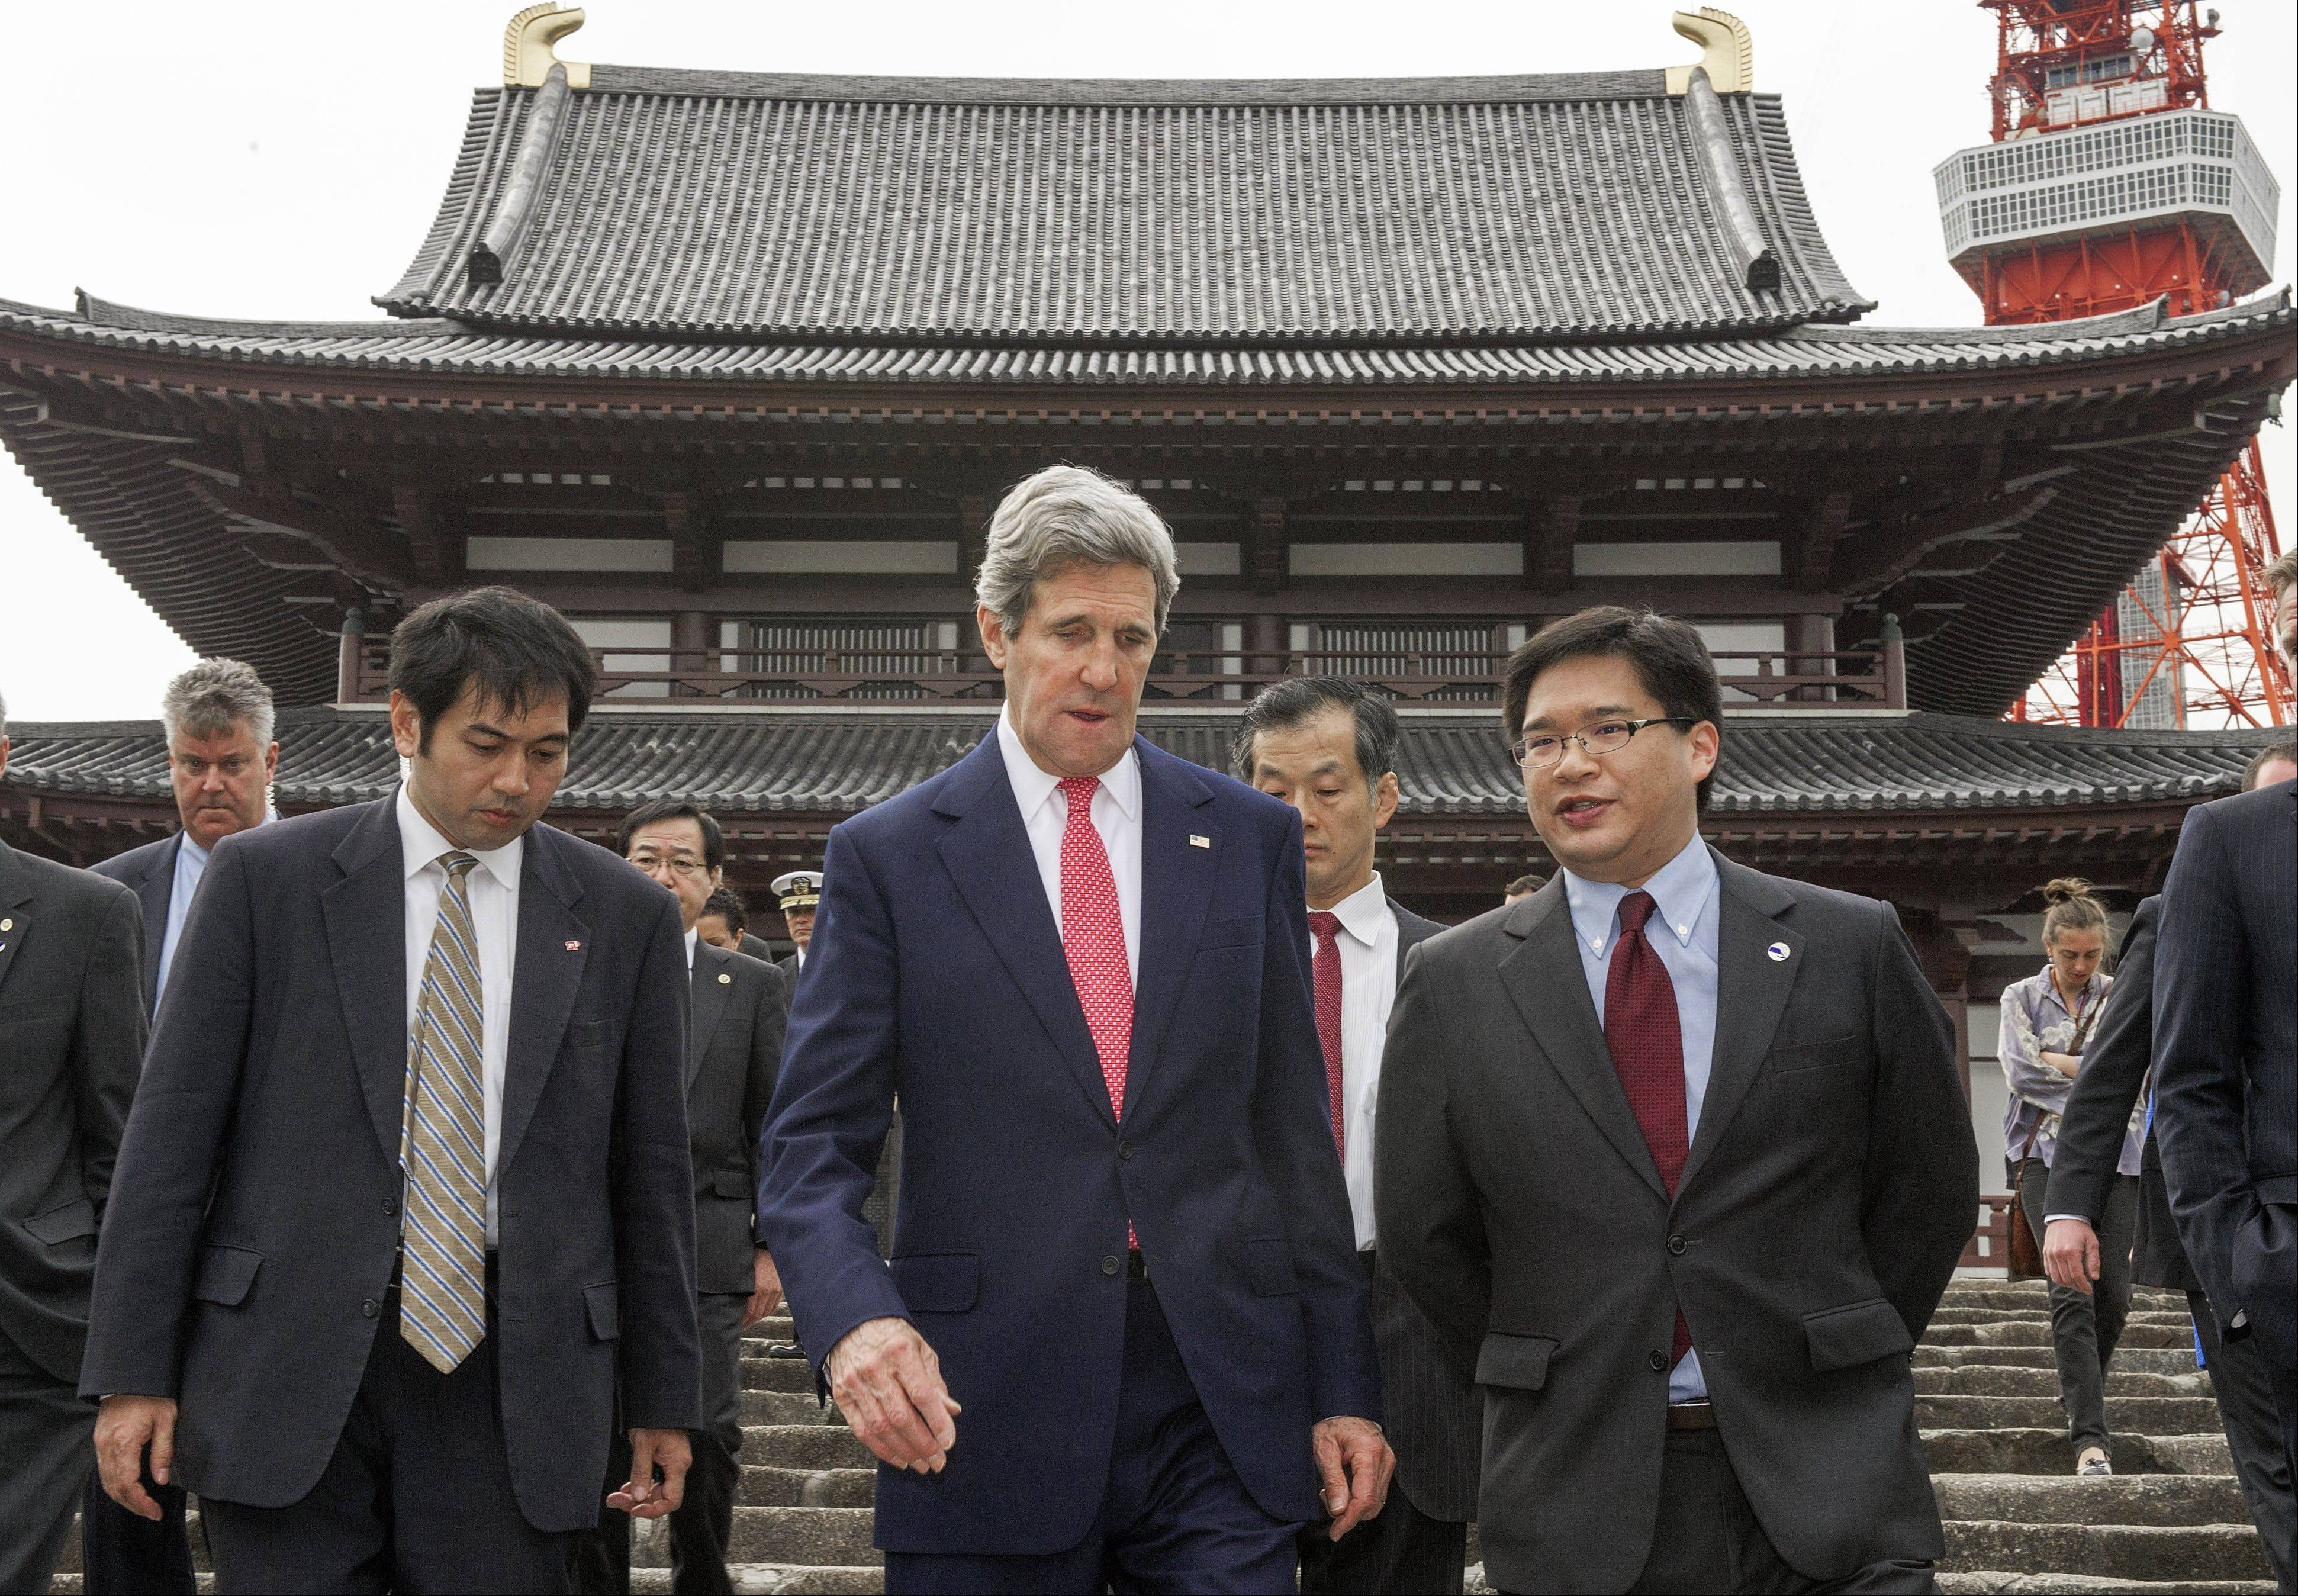 U.S. Secretary of State John Kerry, center, tours the Zojoji Buddhist temple in Tokyo Sunday. The United States and Japan on Sunday offered new talks with North Korea to resolve the increasingly dangerous standoff over its nuclear and missile programs, but said the reclusive communist government first must lower tensions and honor previous agreements.